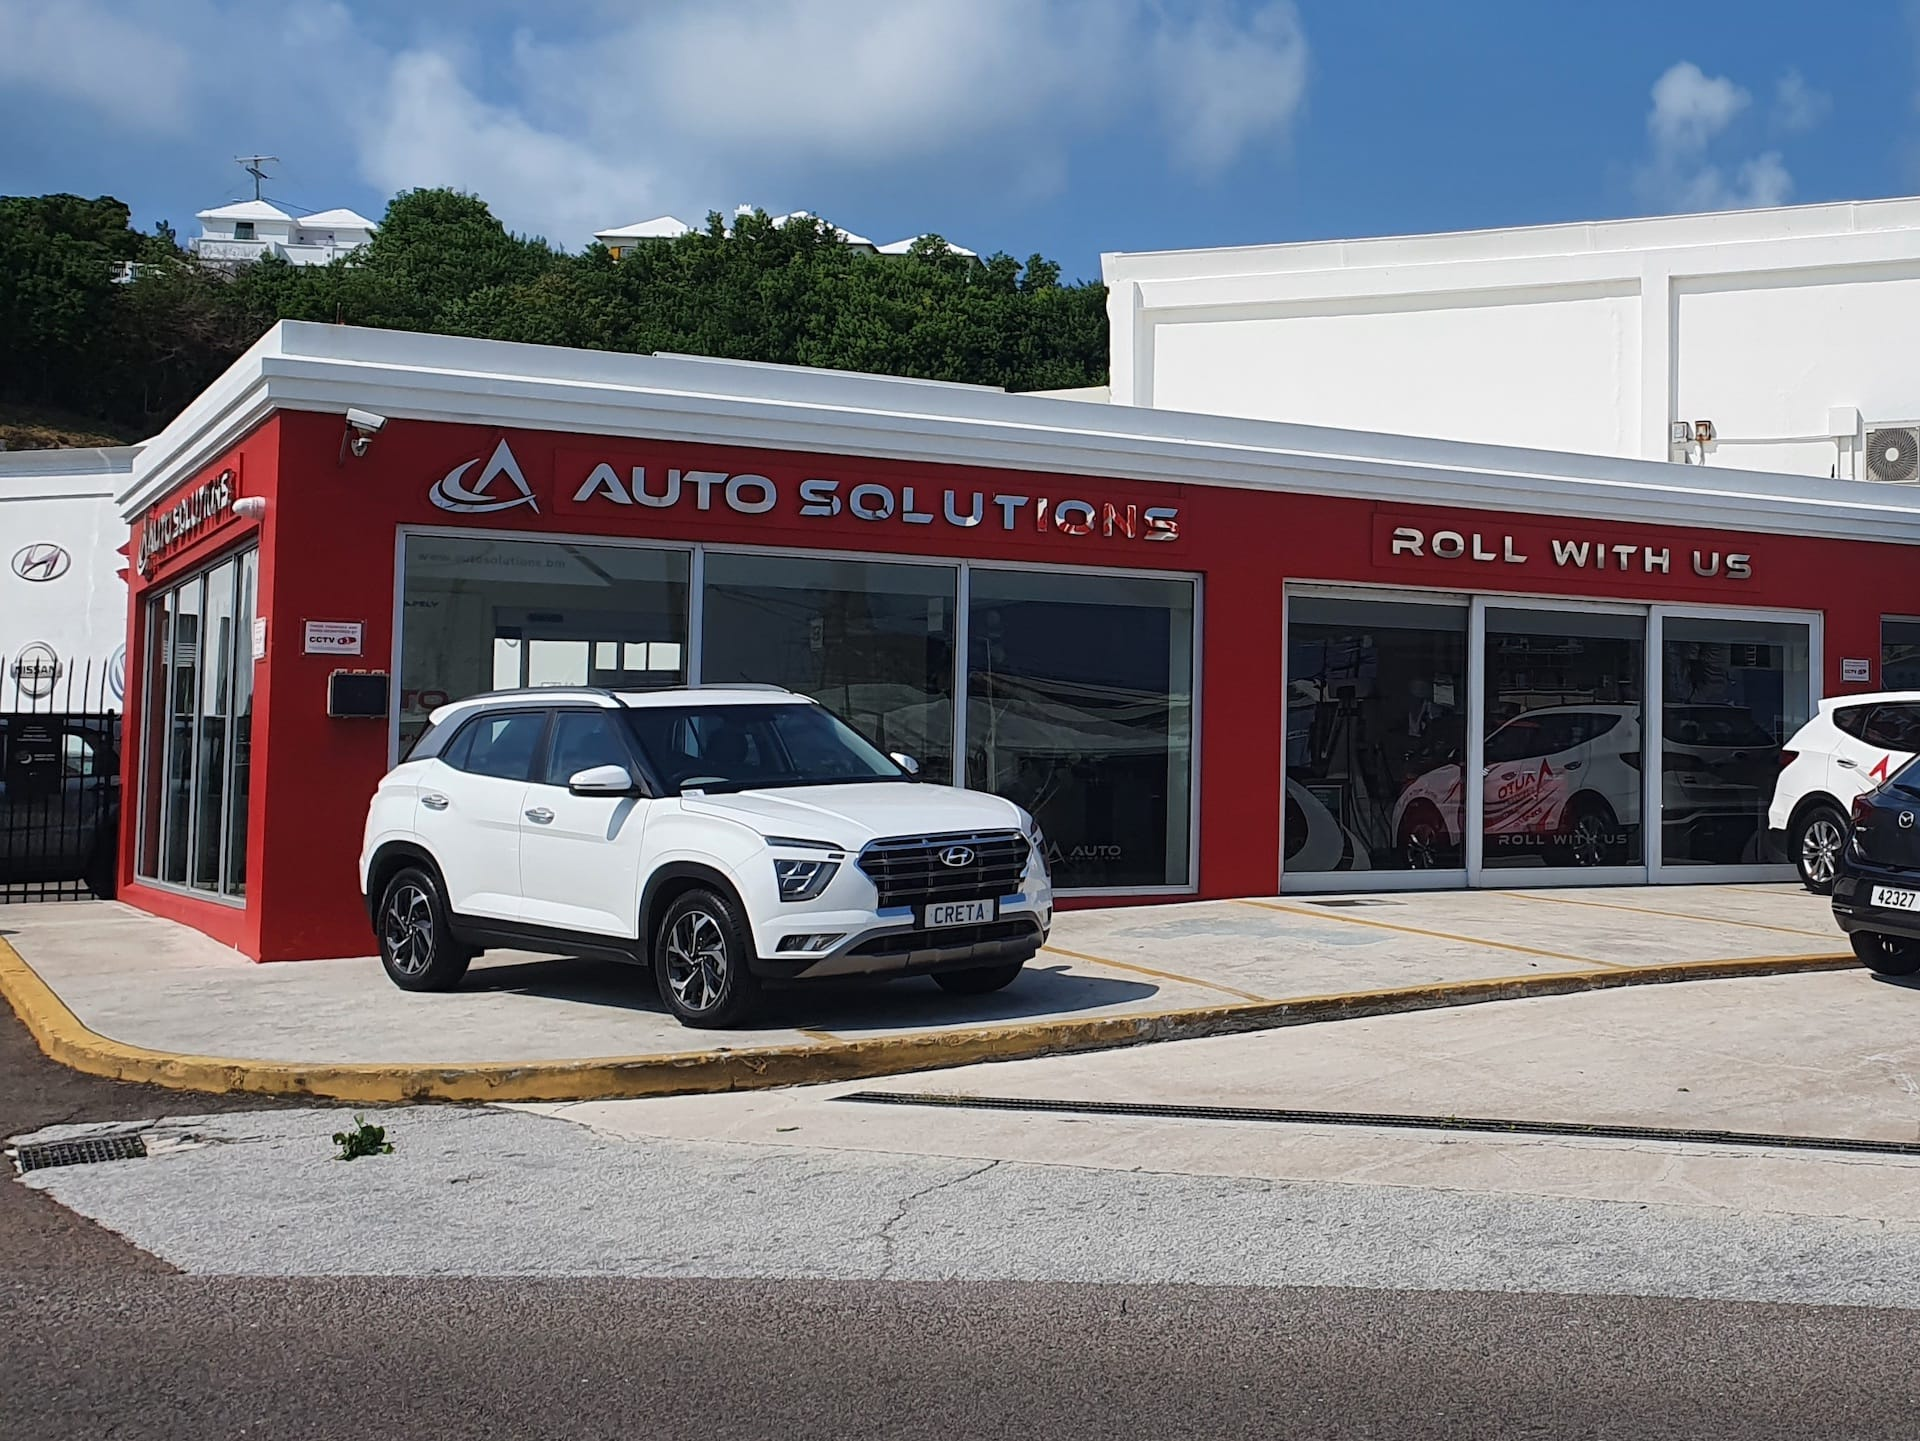 Auto Solutions Upgrade CCTV at St. John's Road with Arkiv Video Management Software 2